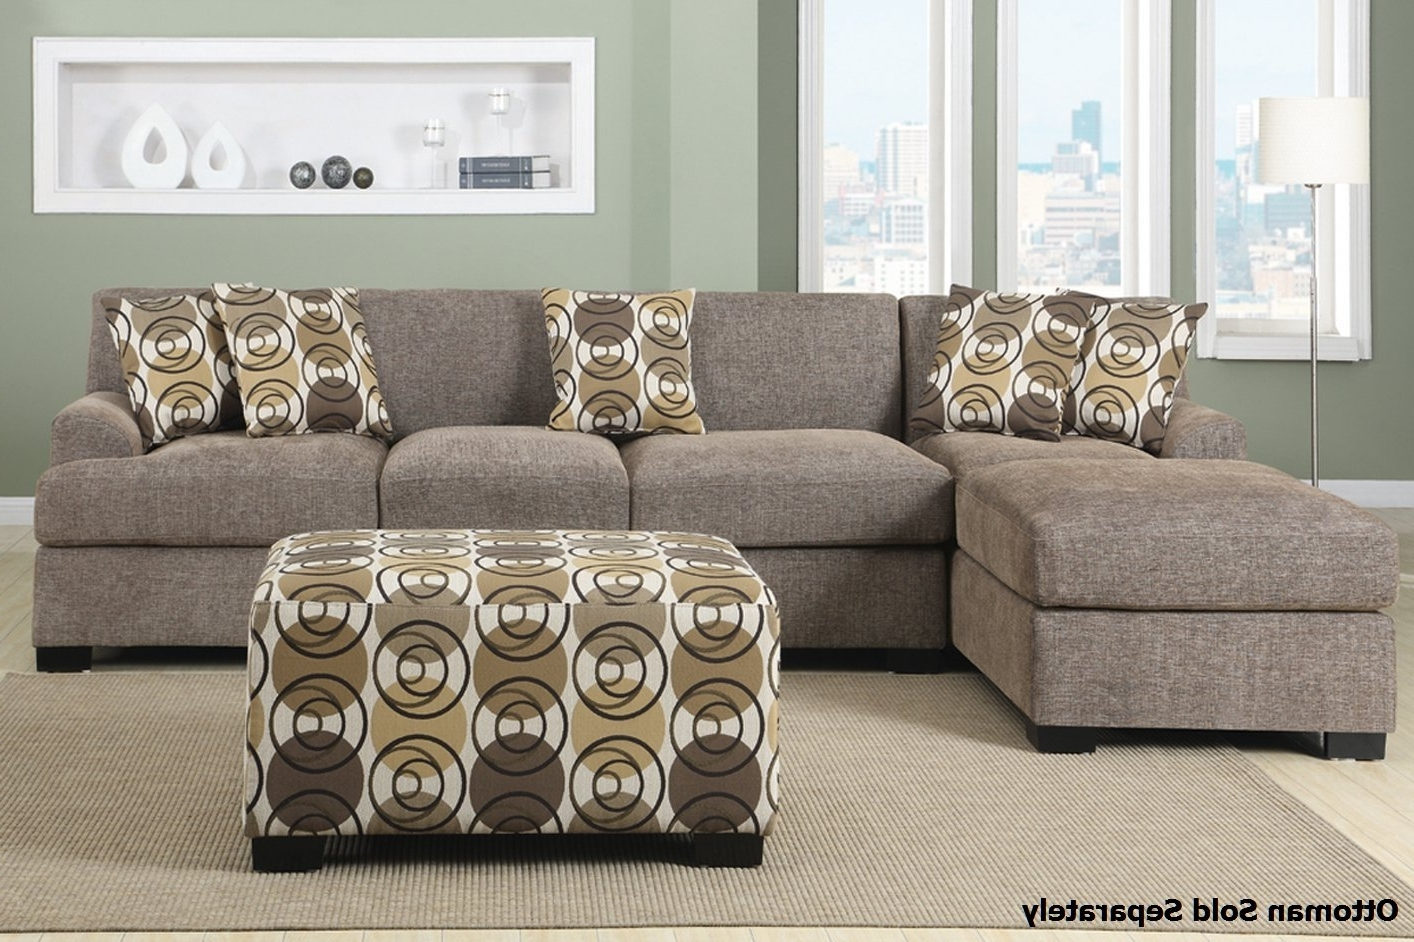 Most Recent Tallahassee Sectional Sofas Within Furniture: American Freight Sectionals For Luxury Living Room (View 12 of 20)